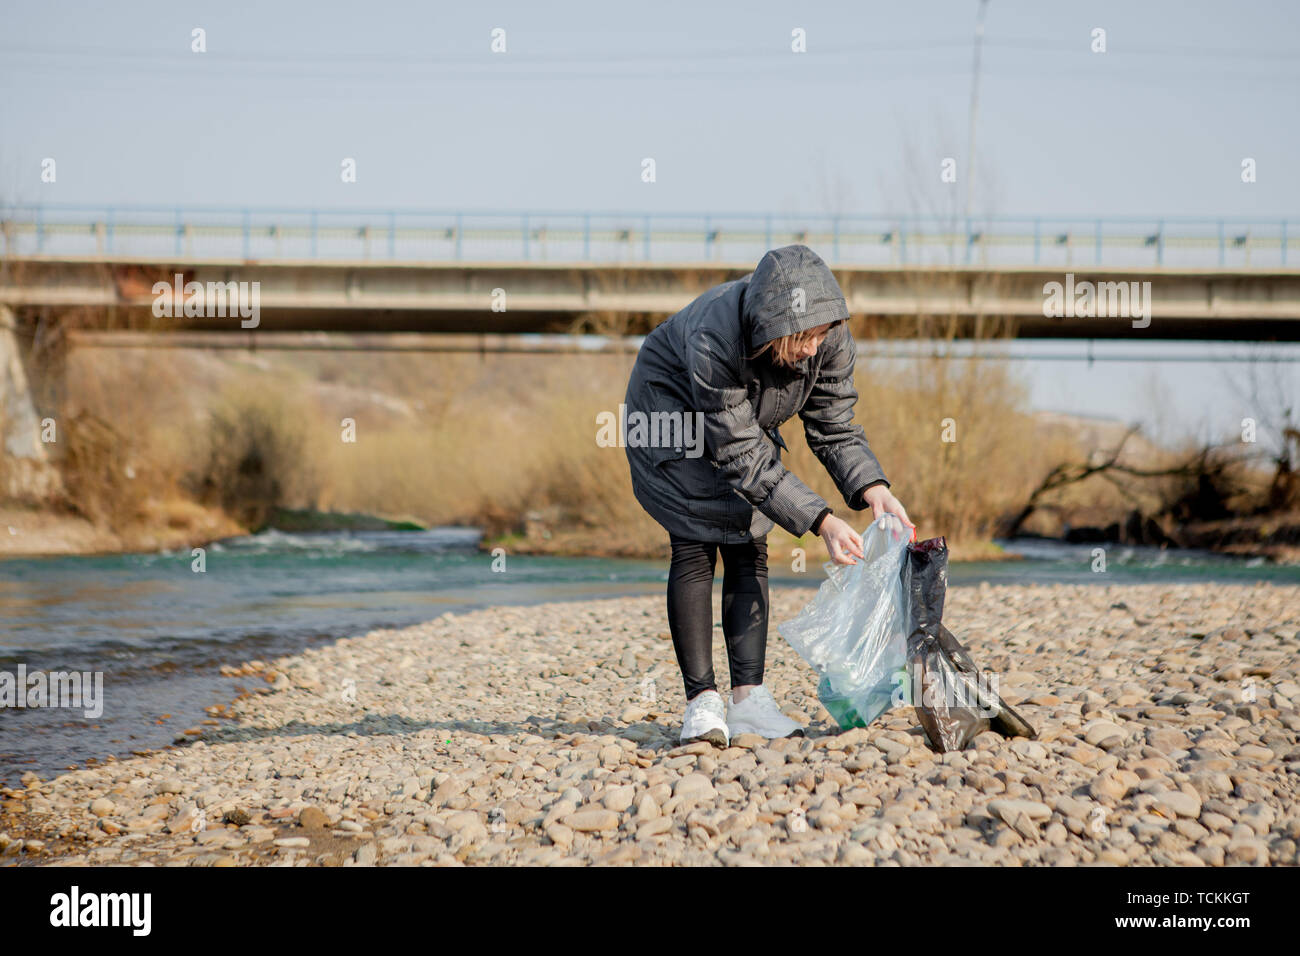 Young woman collecting plastic trash from the beach and putting it into black plastic bags for recycle. Cleaning and recycling concept - Stock Image